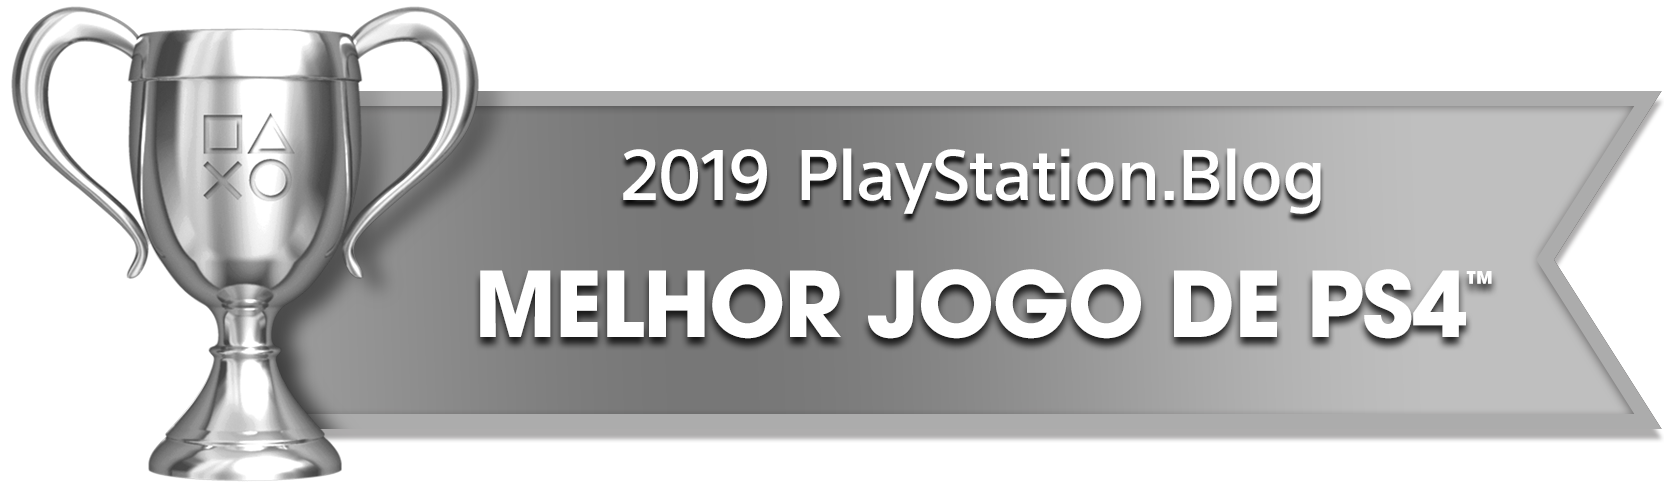 PS Blog Game of the Year 2019 - Best PS4 Game - 3 - Silver